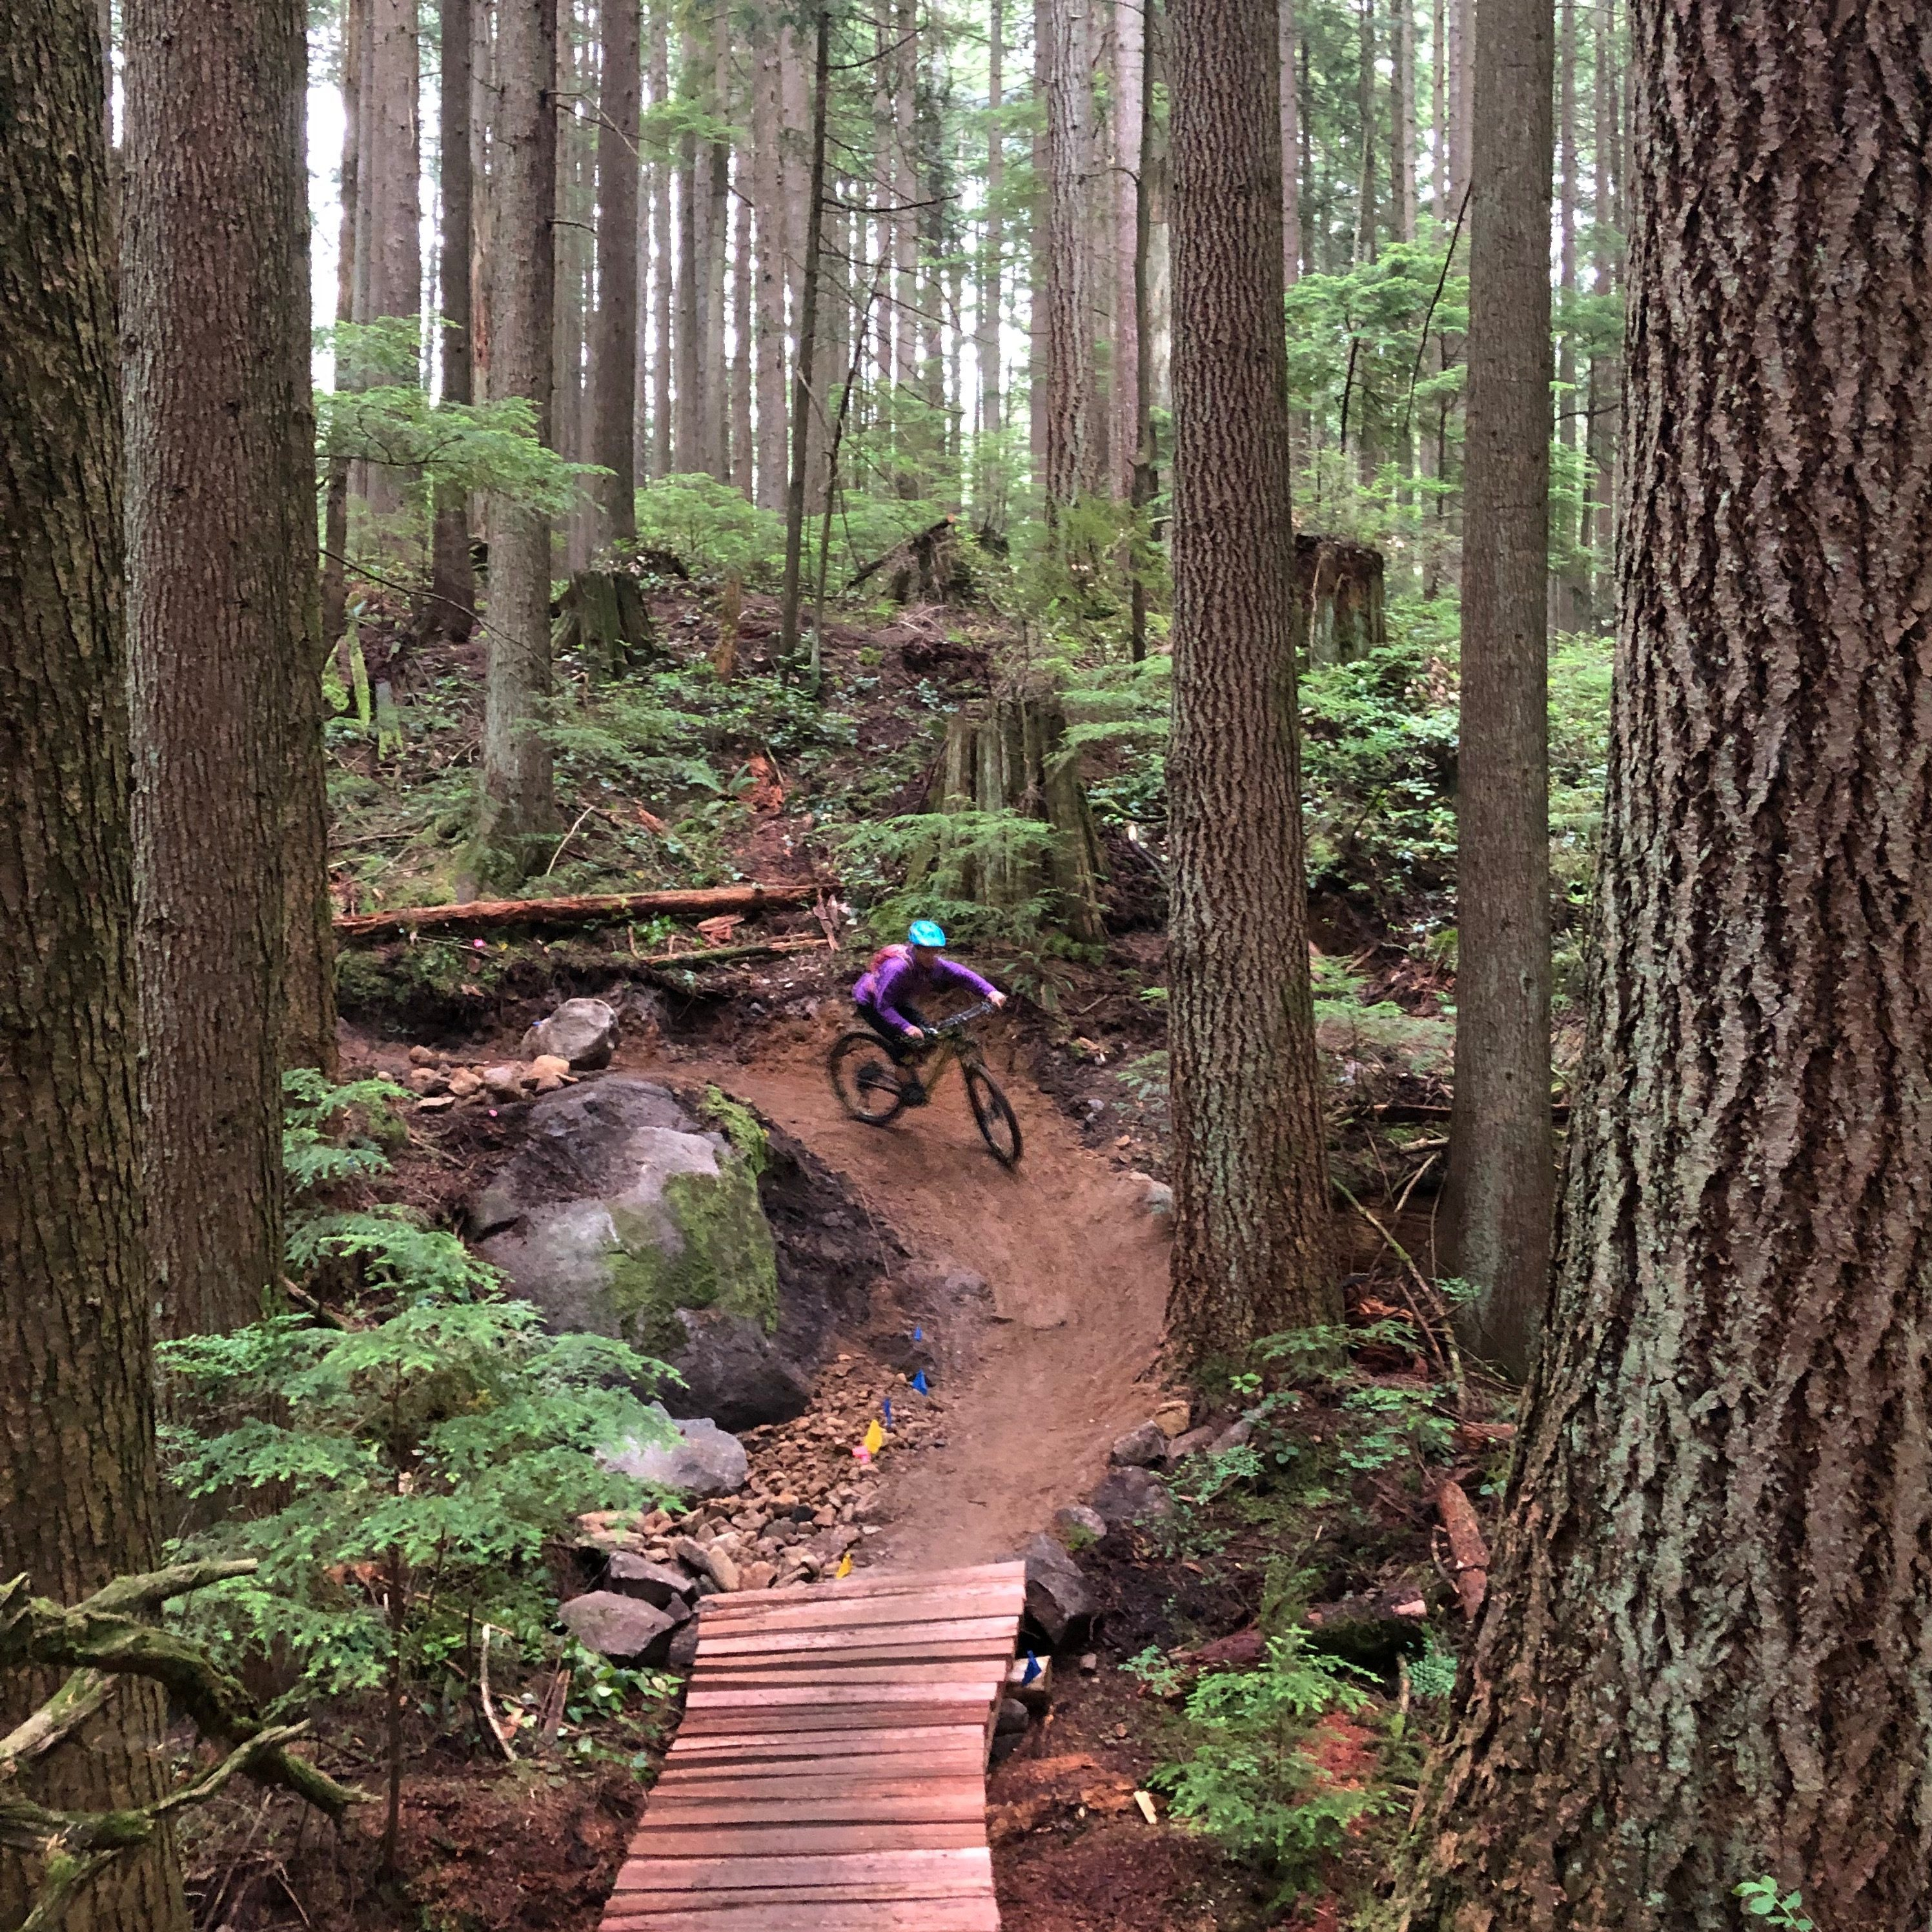 A mountain biking riding through a corner down a fresh section of trail towards the viewer